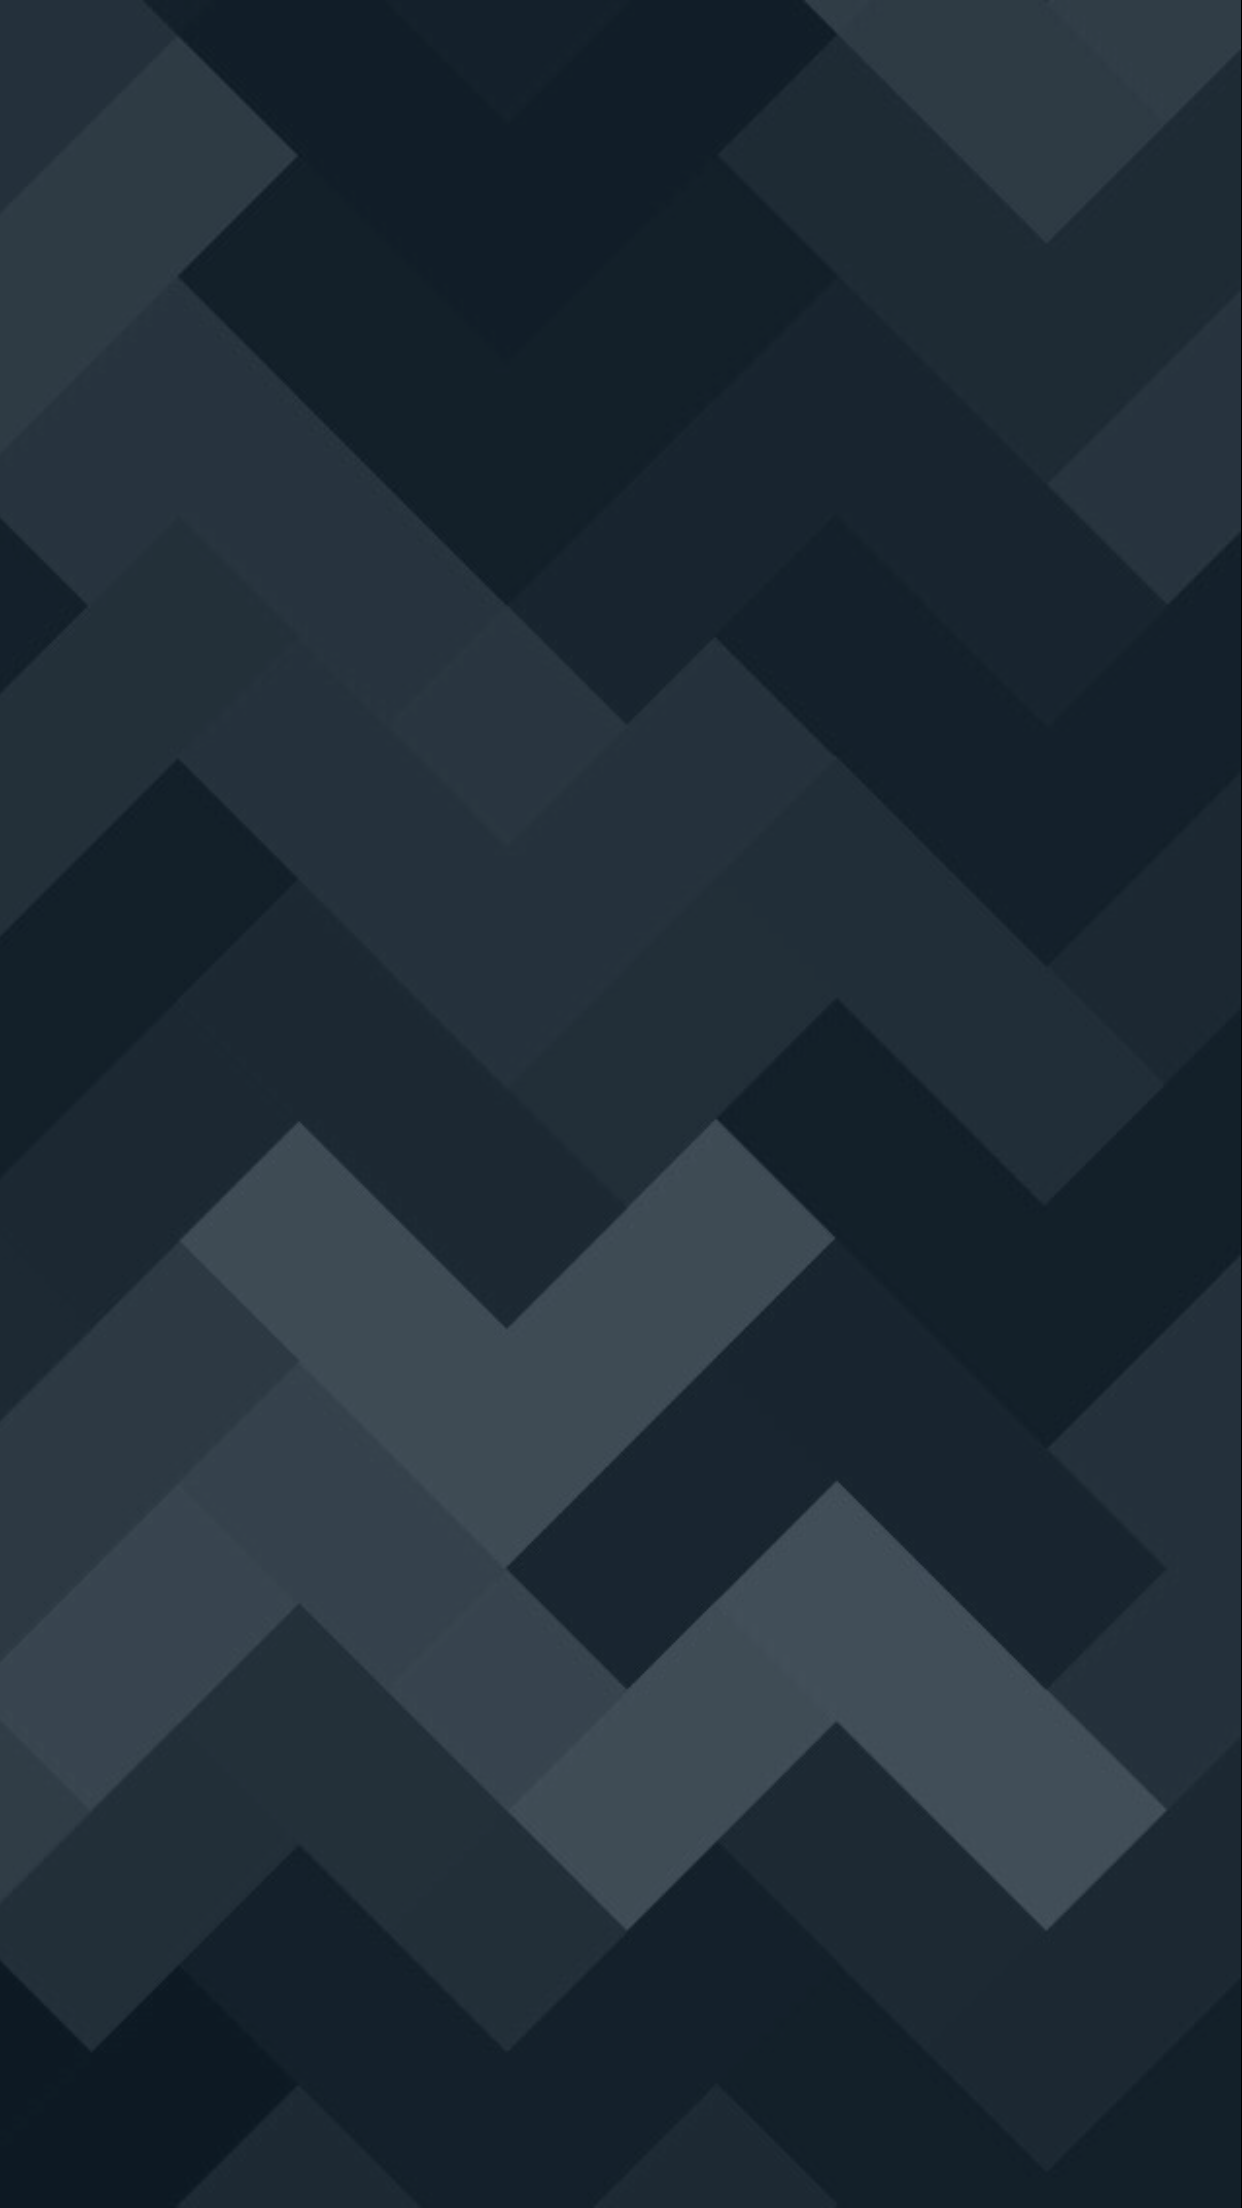 Wallpapers of the week geometric wallpapers for iPhone 1242x2208